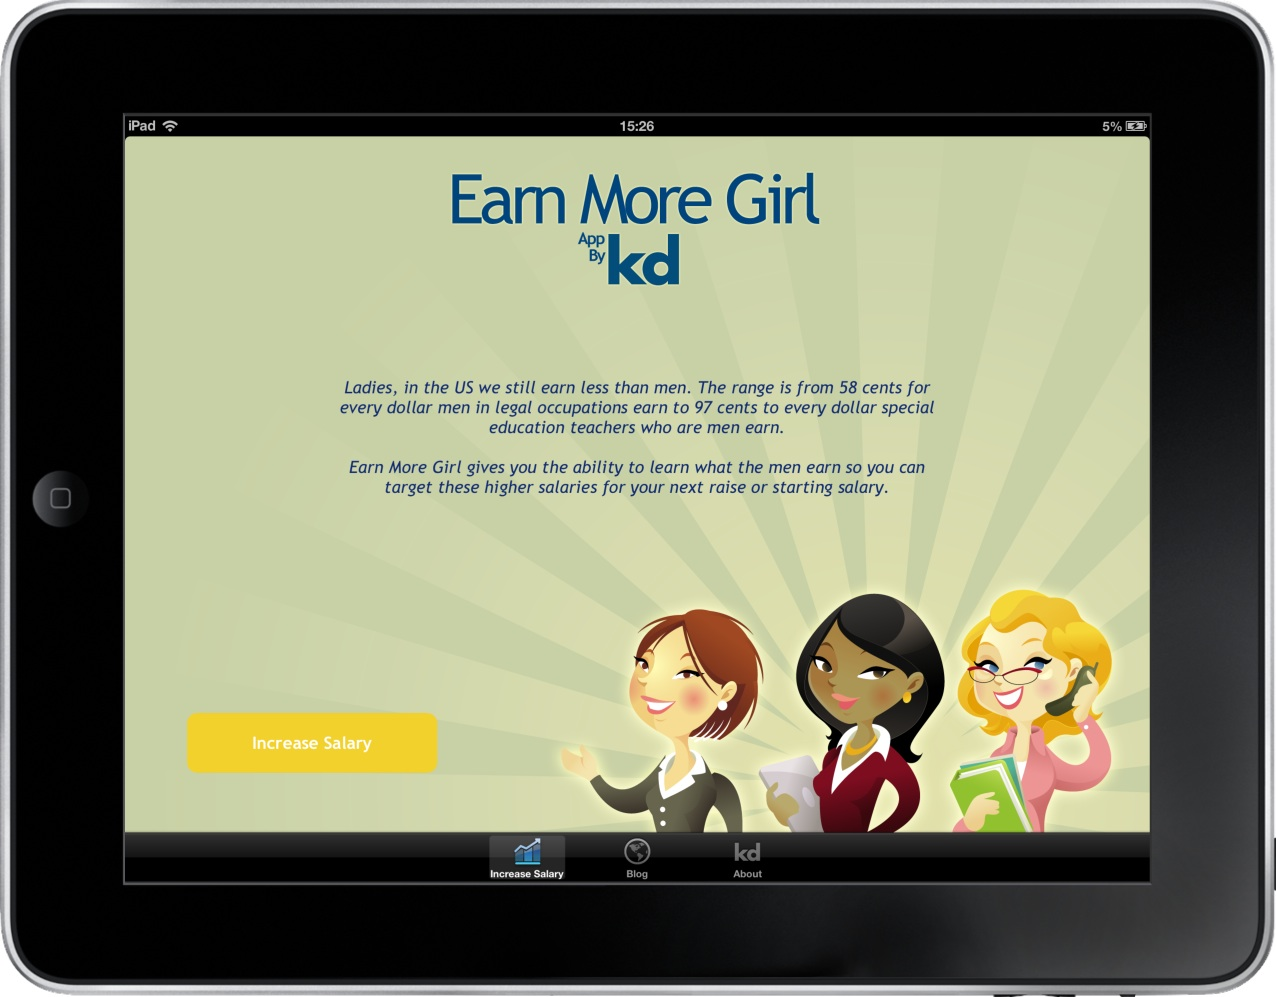 Earn More Girl iPad Website Images